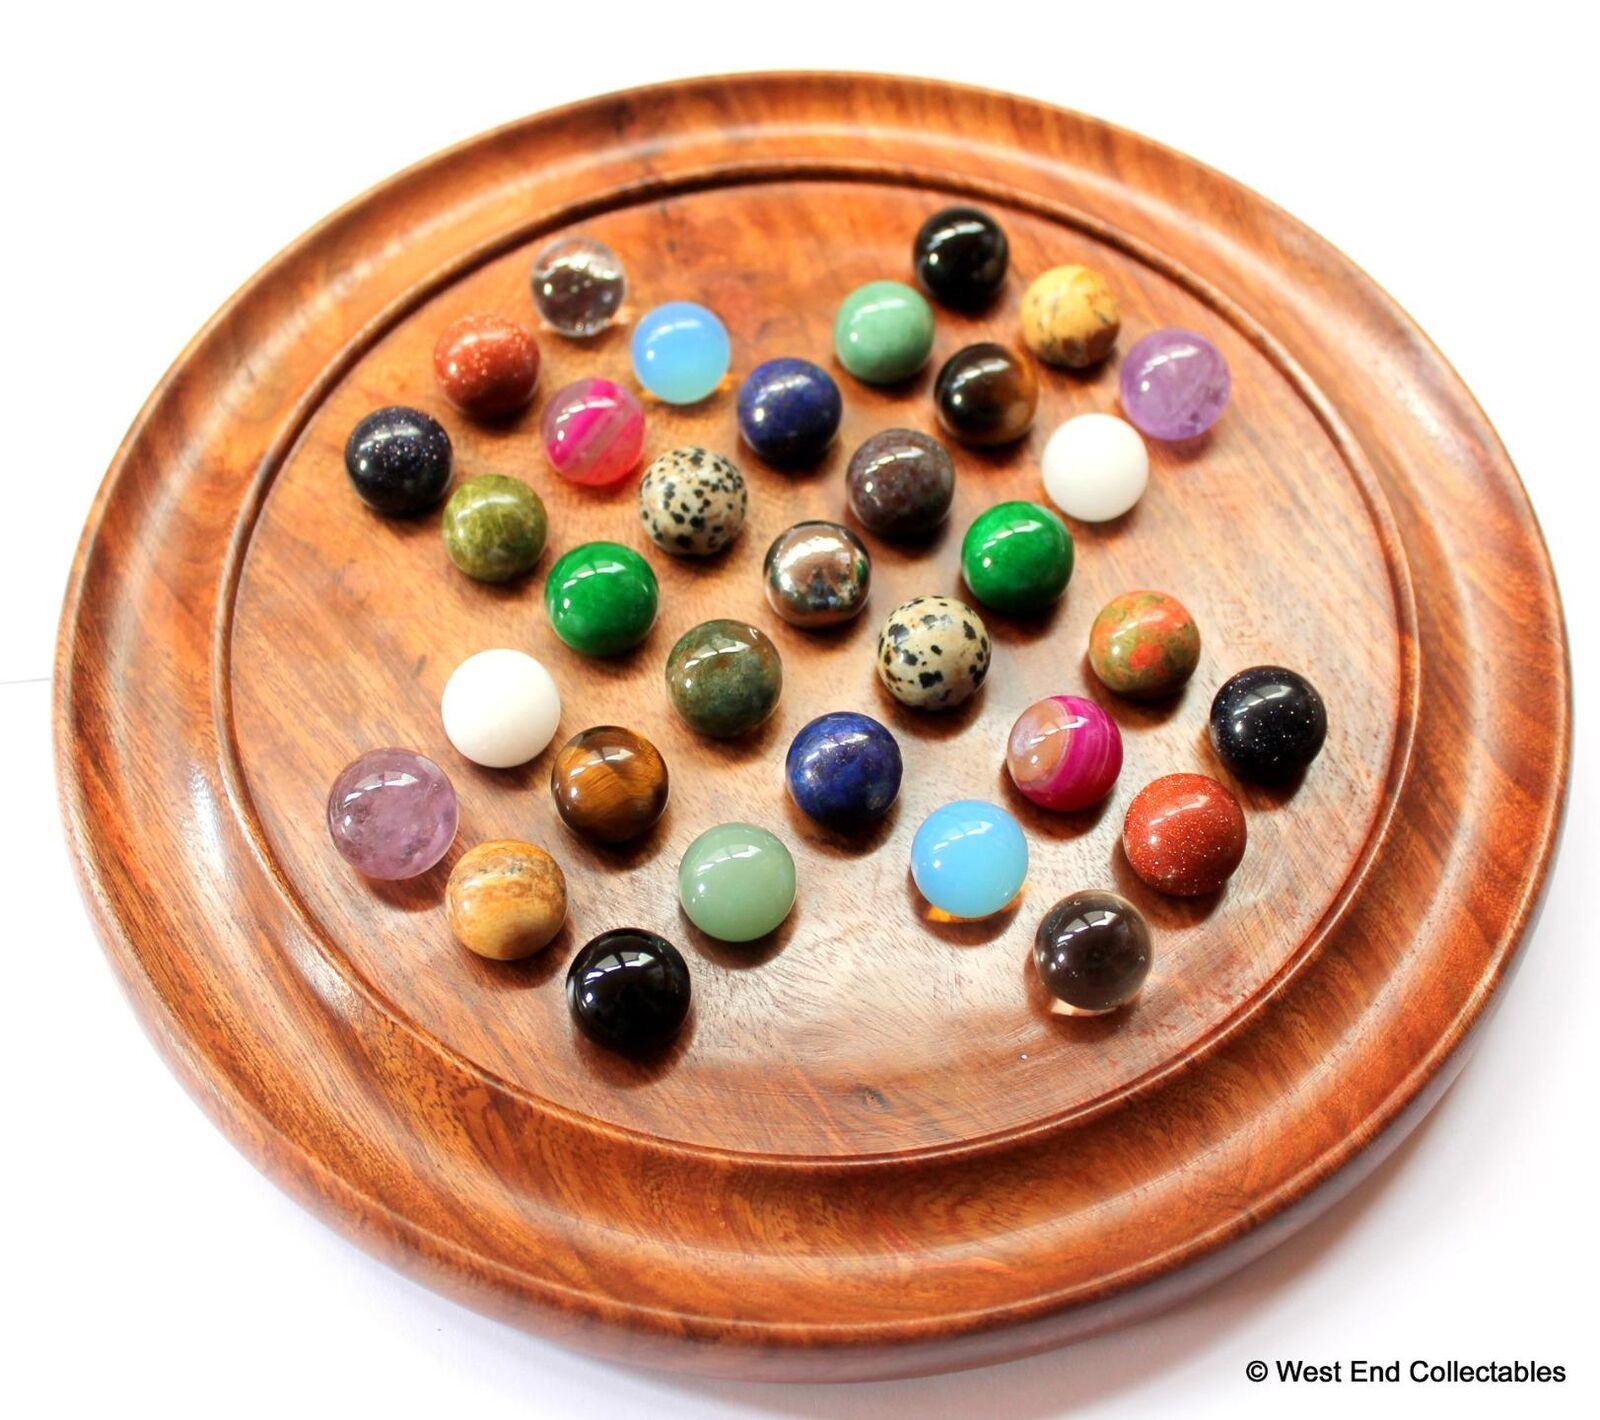 Gemstone, Mineral & Metal Marbles Solitaire Game Set - 33 x 16mm Marble Chakra